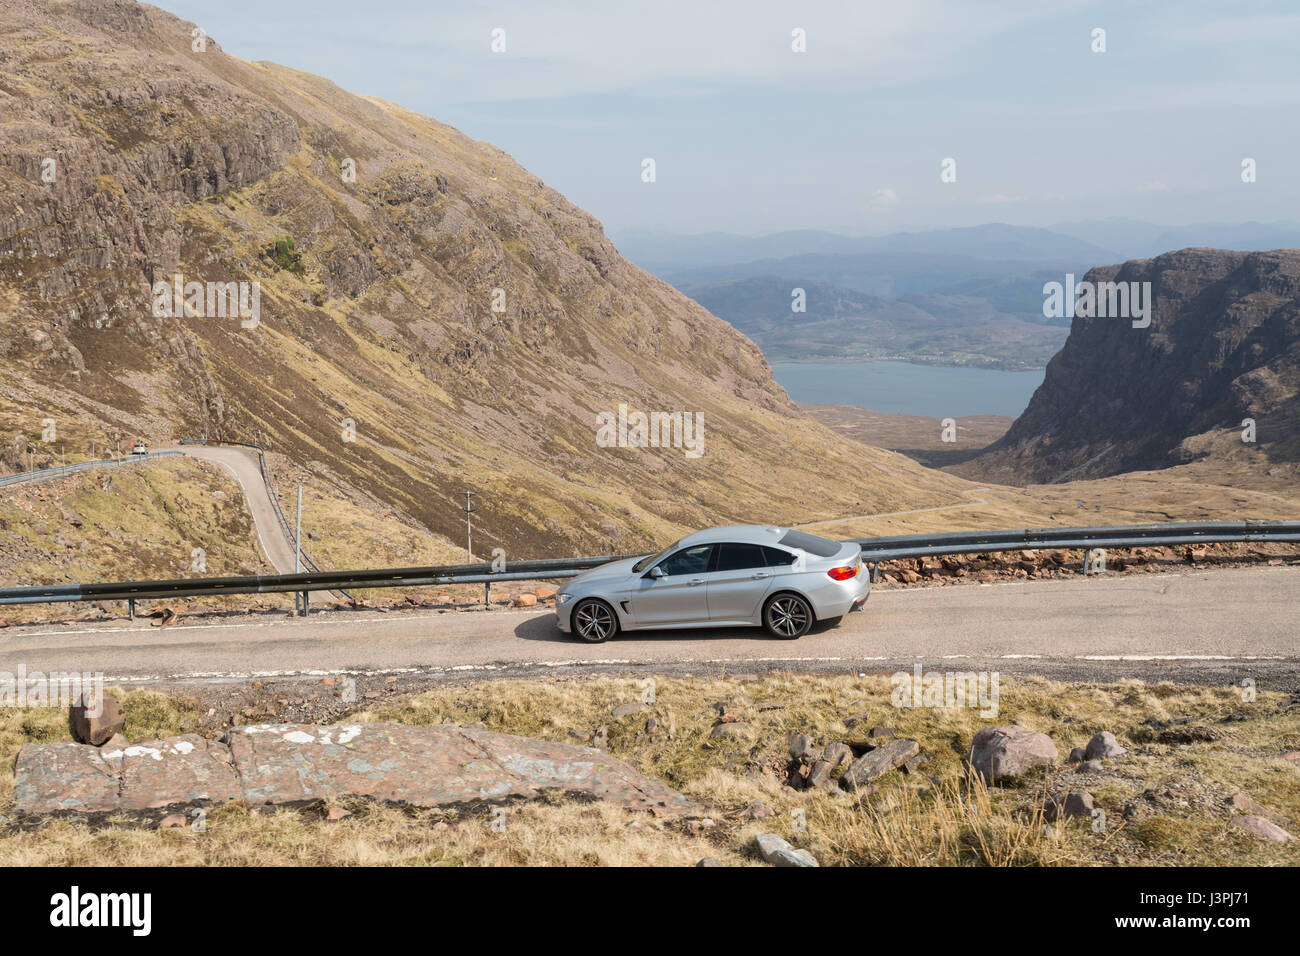 North Coast 500 route - car on Bealach na ba road, Applecross, Highland, Scotland, UK - Stock Image